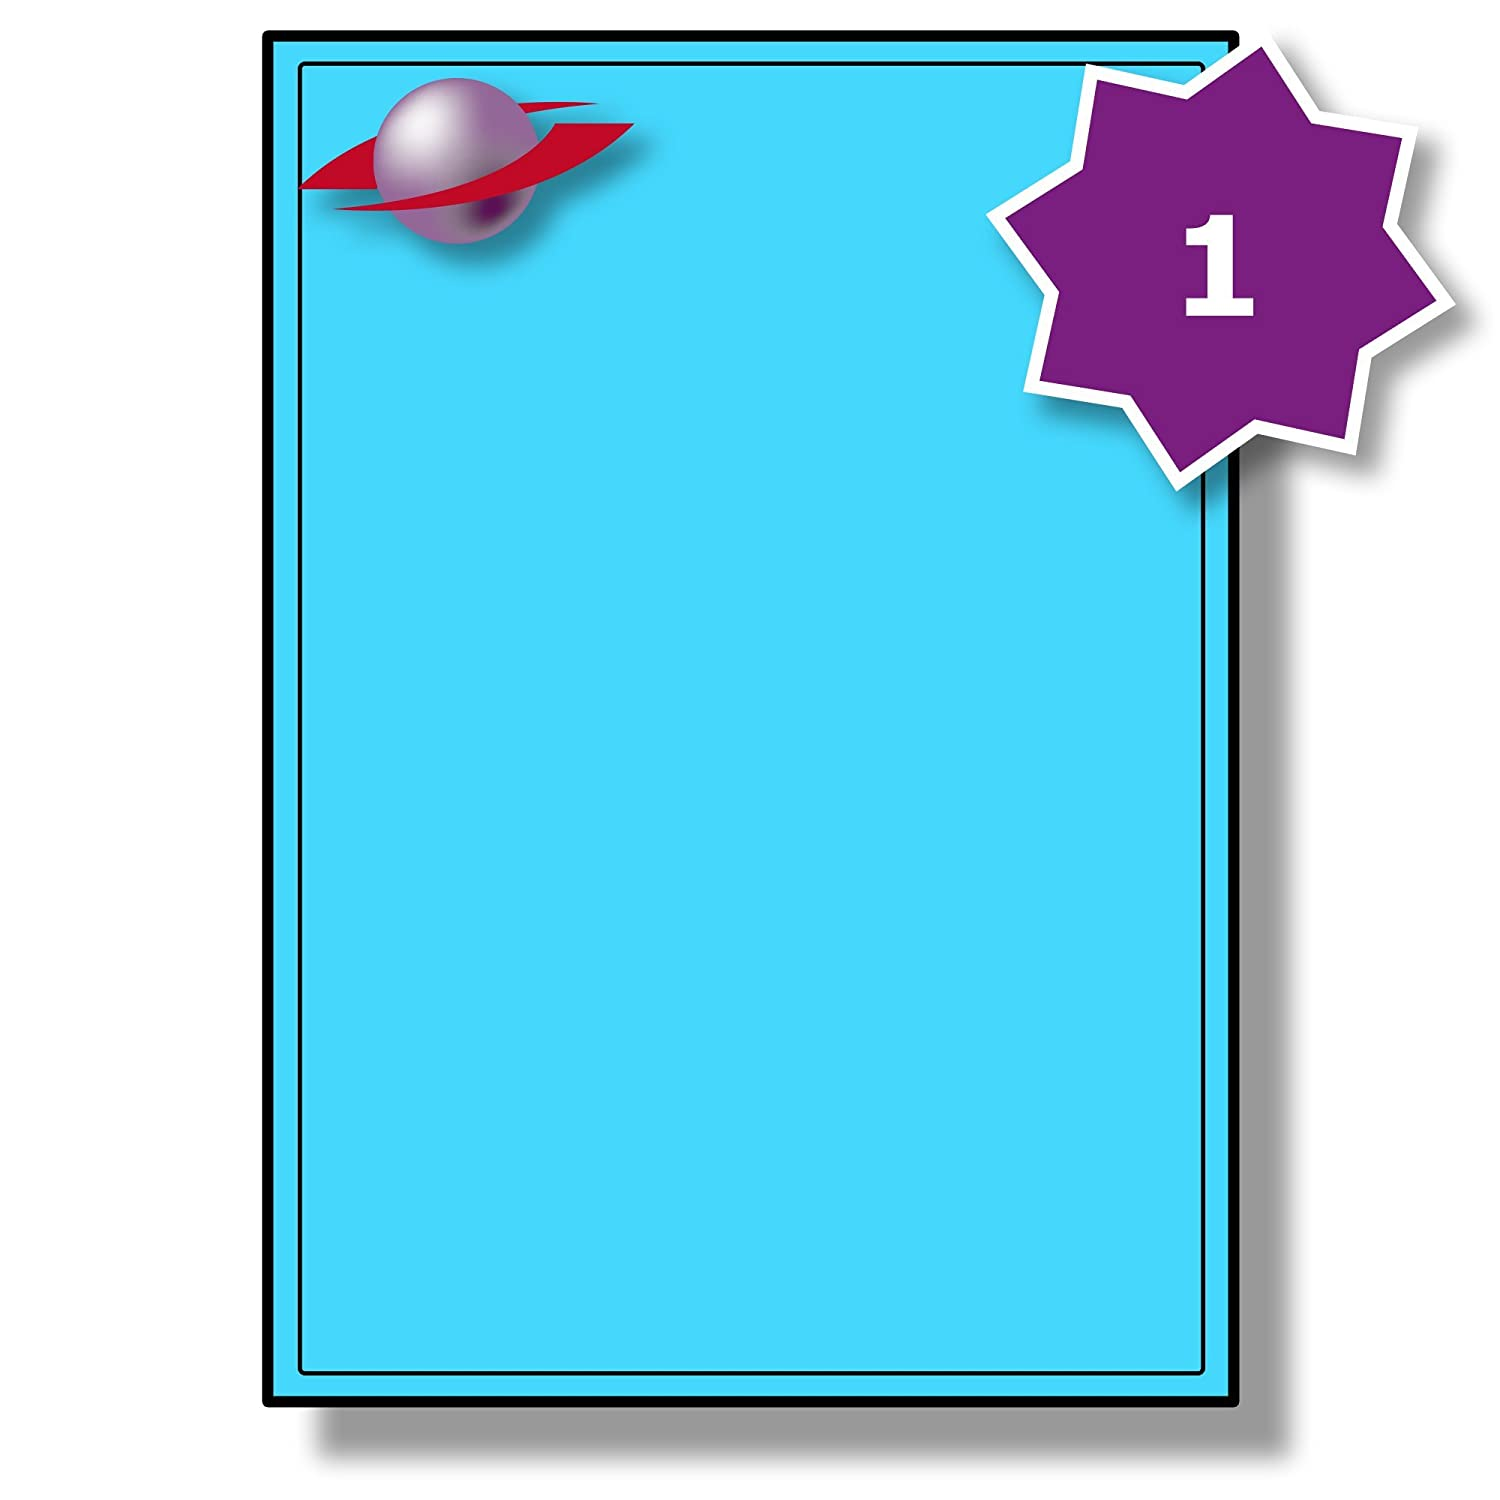 1 Per Page/Sheet, 25 Sheets (25 Sticky YELLOW Labels), Label Planet® Blank Plain Matt Paper Self-Adhesive A4 Coloured Multi-Purpose Paper Stickers, Printable With Laser/Copier or Inkjet Printers, UK LP1/199C, 199.6 x 289.1 MM, FOR JAM FREE PRINTING